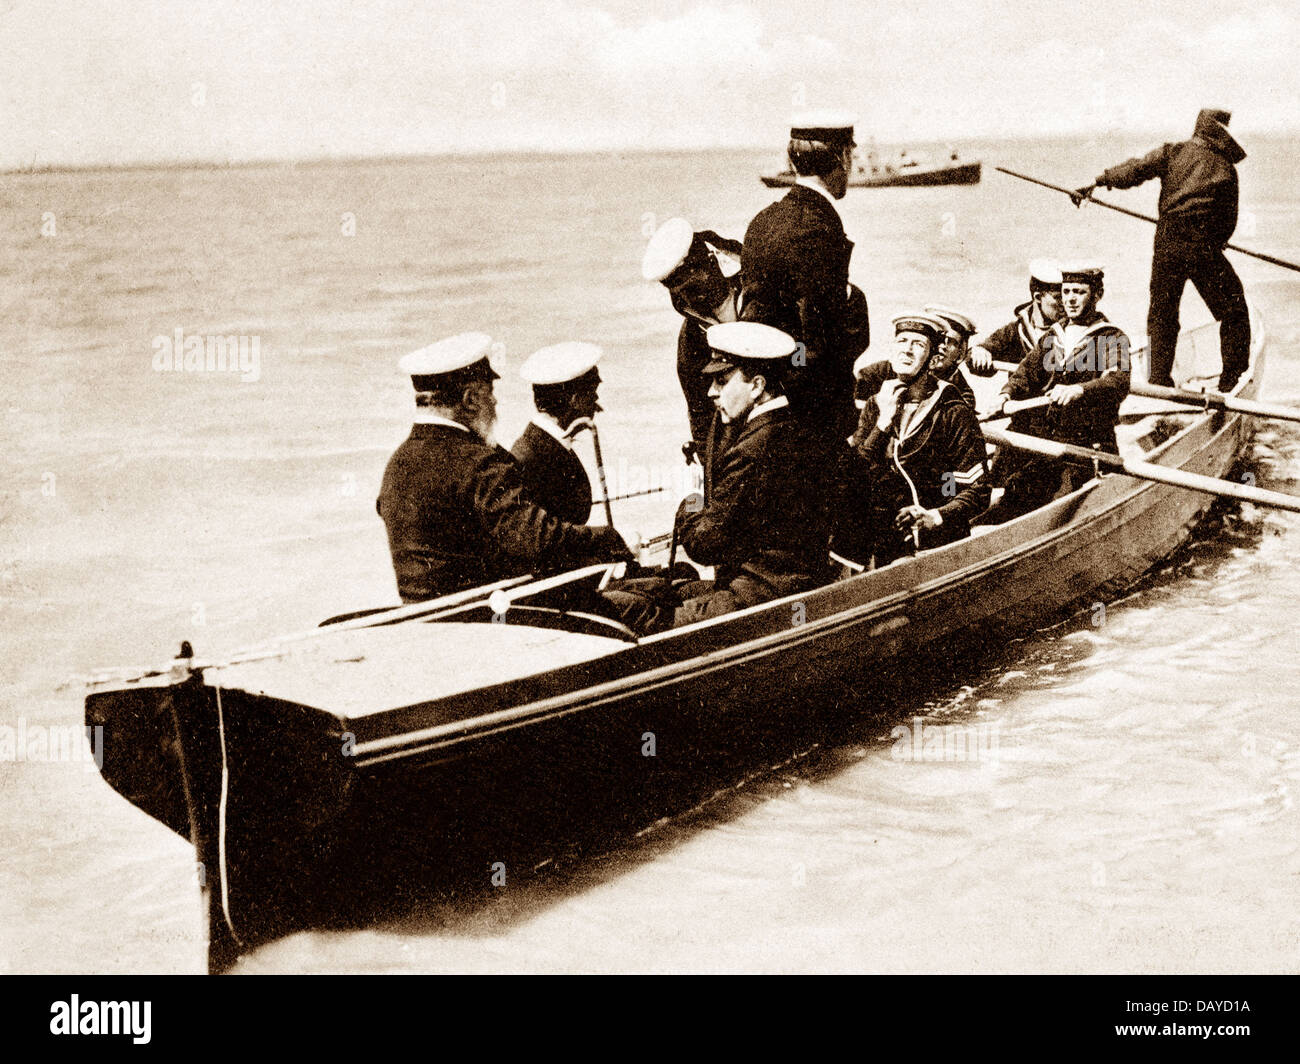 Cowes Week King Edward VII Isle of Wight early 1900s - Stock Image